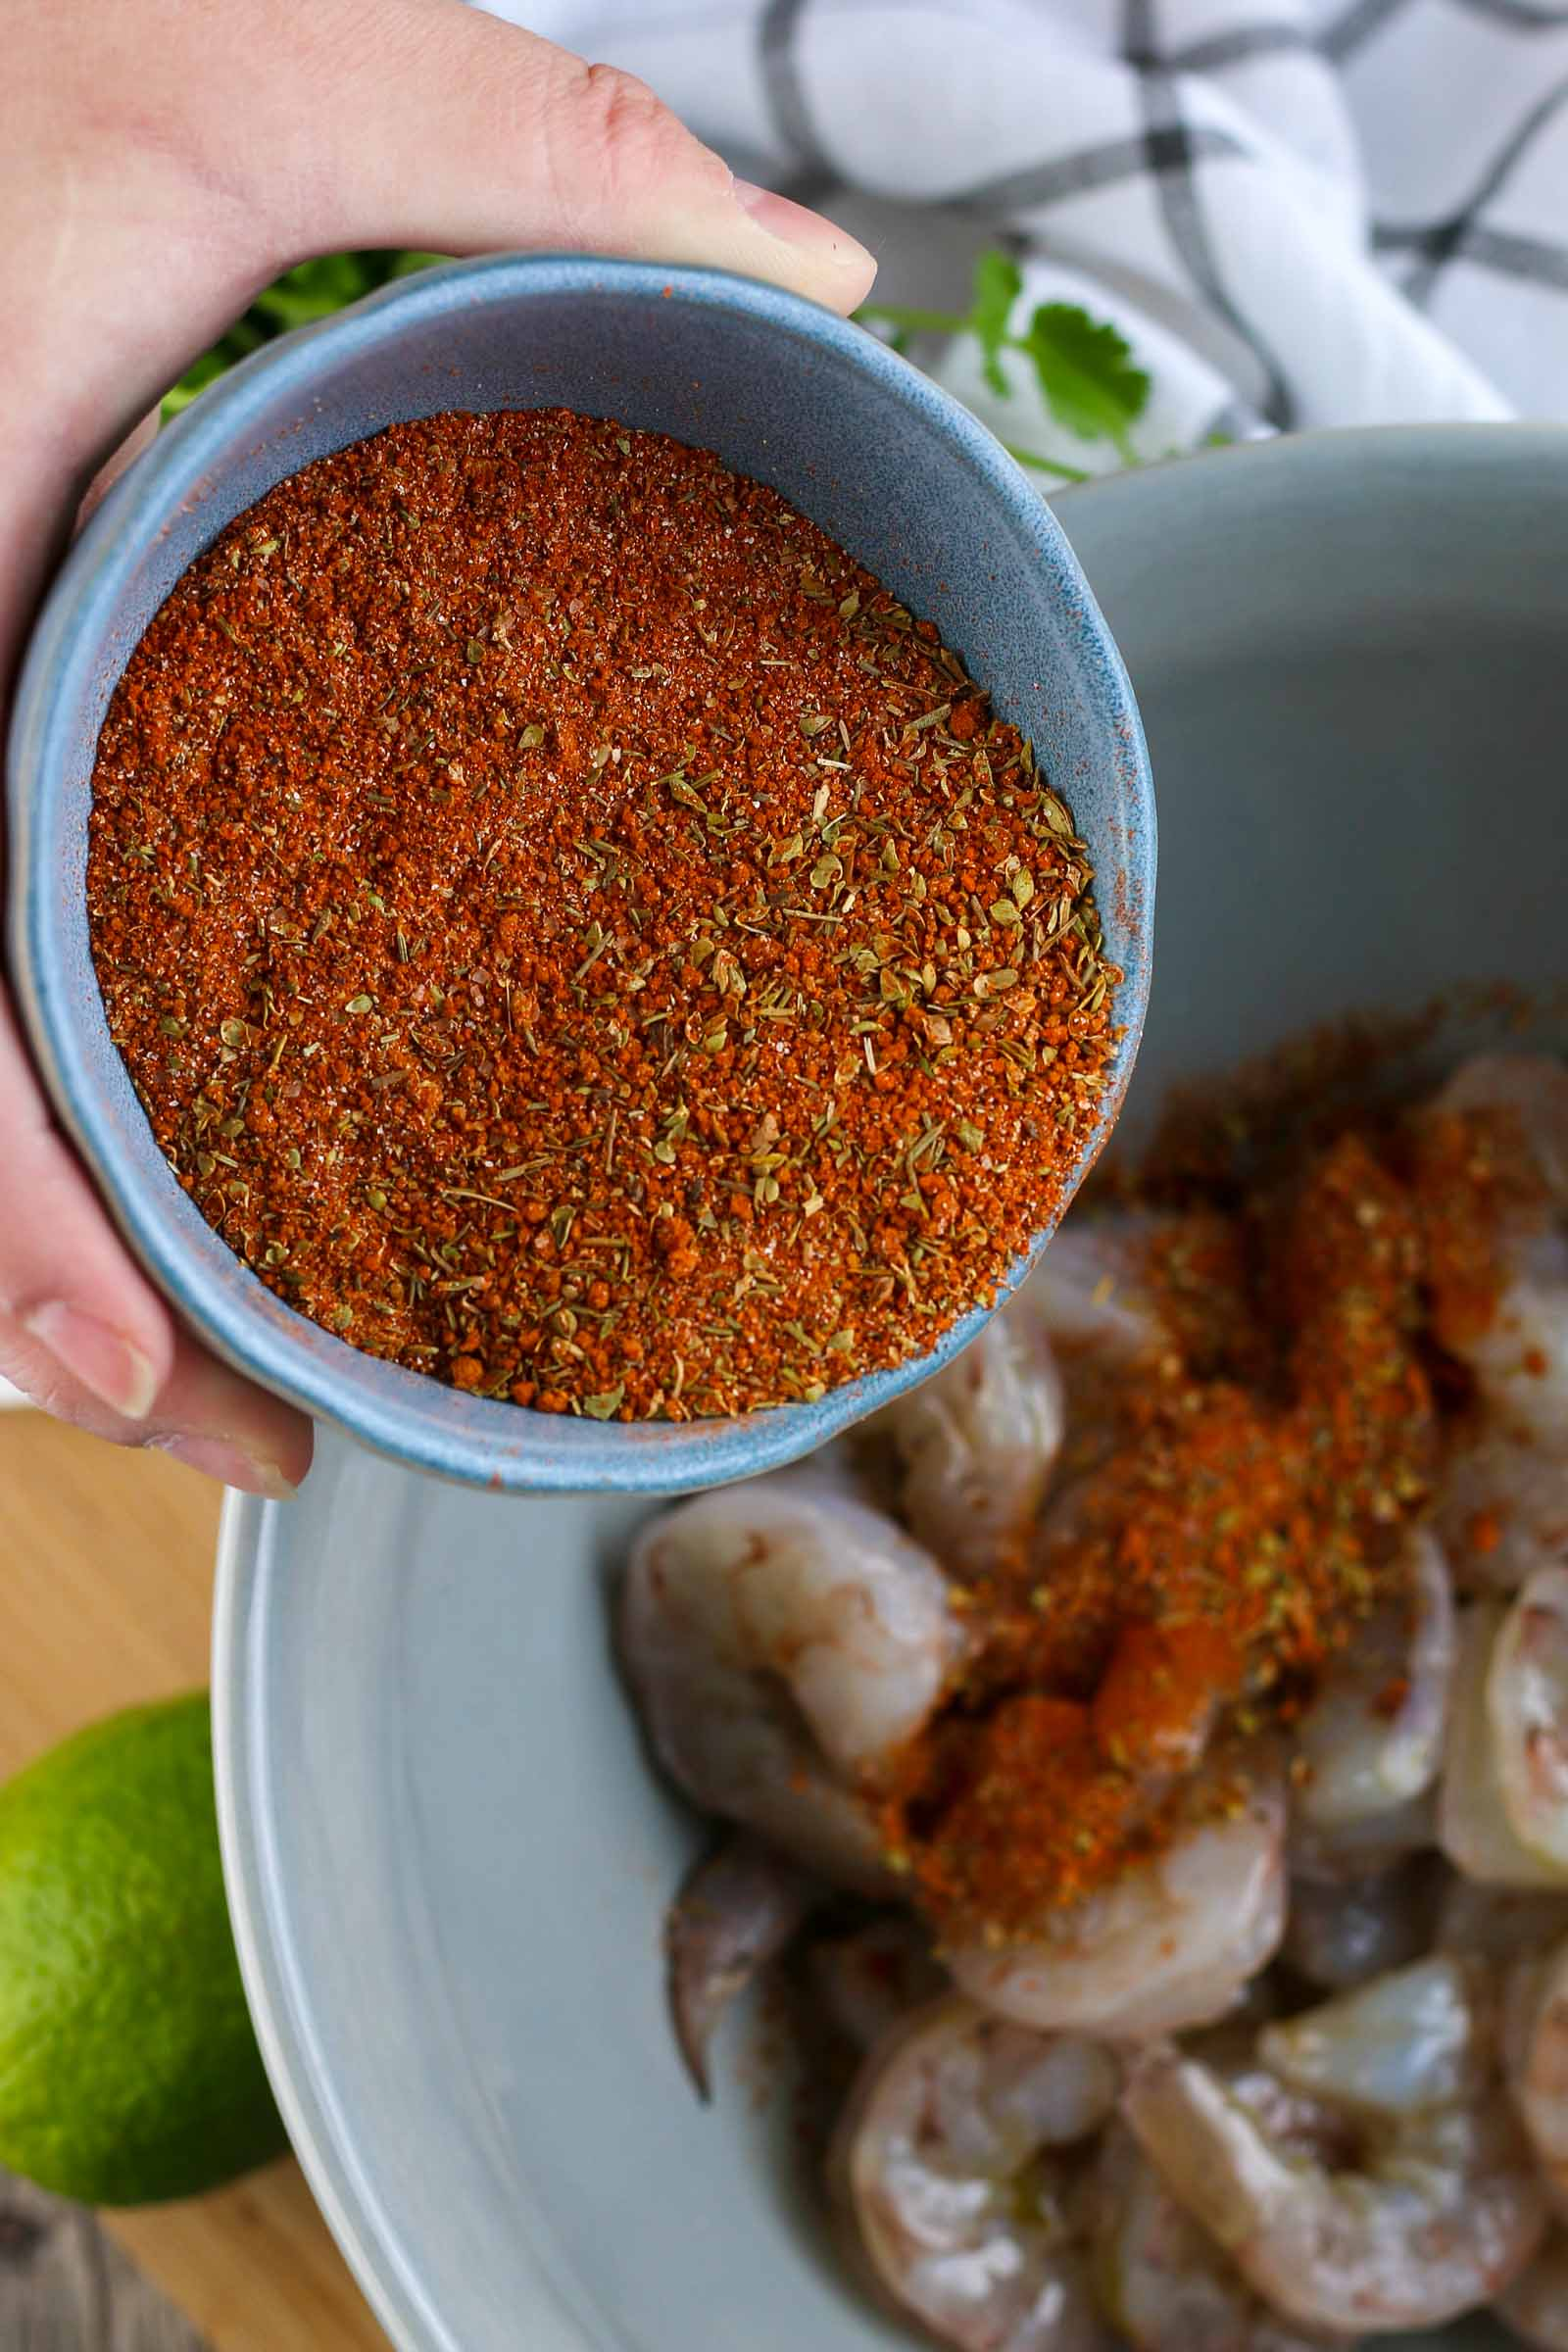 blackened seasoning going onto the shrimp